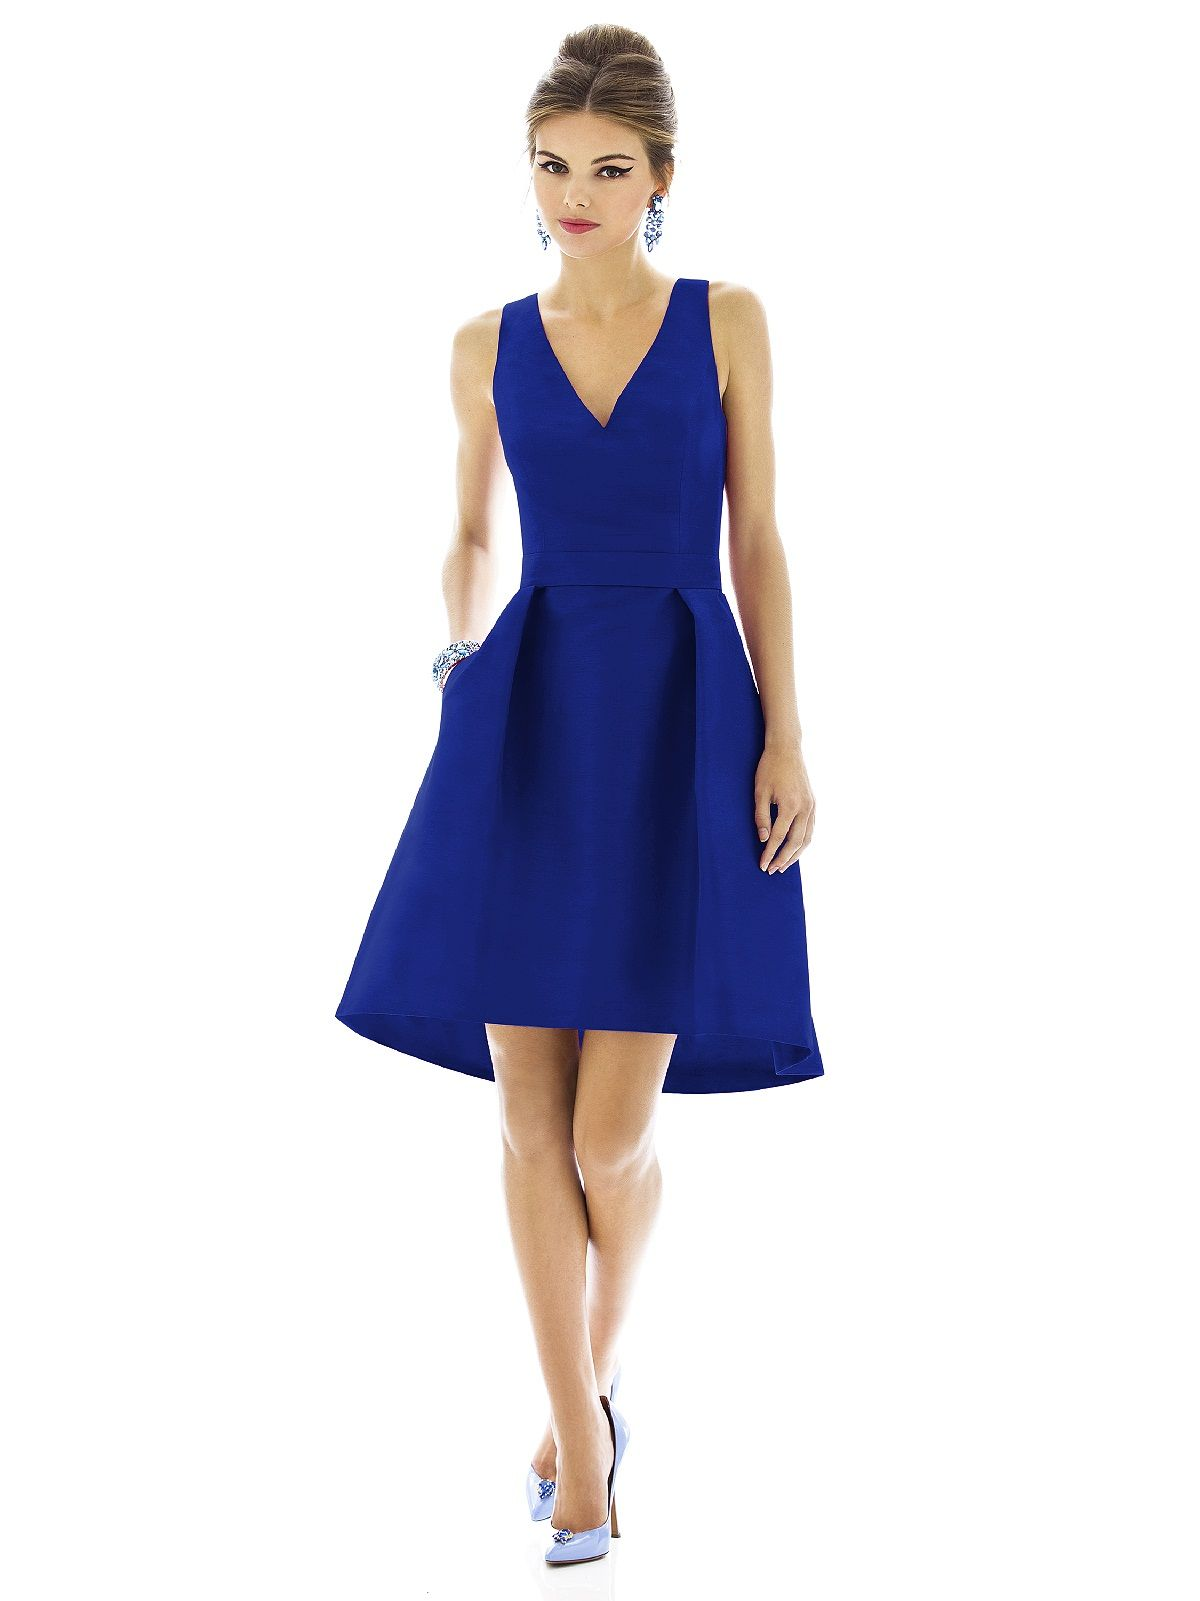 Royal blue v neck bridesmaid pinterest shape cute best for bride is a bridal store for bridal wedding gowns dresses in toronto ontario gta canada offers bridesmaids mothers of the bride prom accessories ombrellifo Choice Image